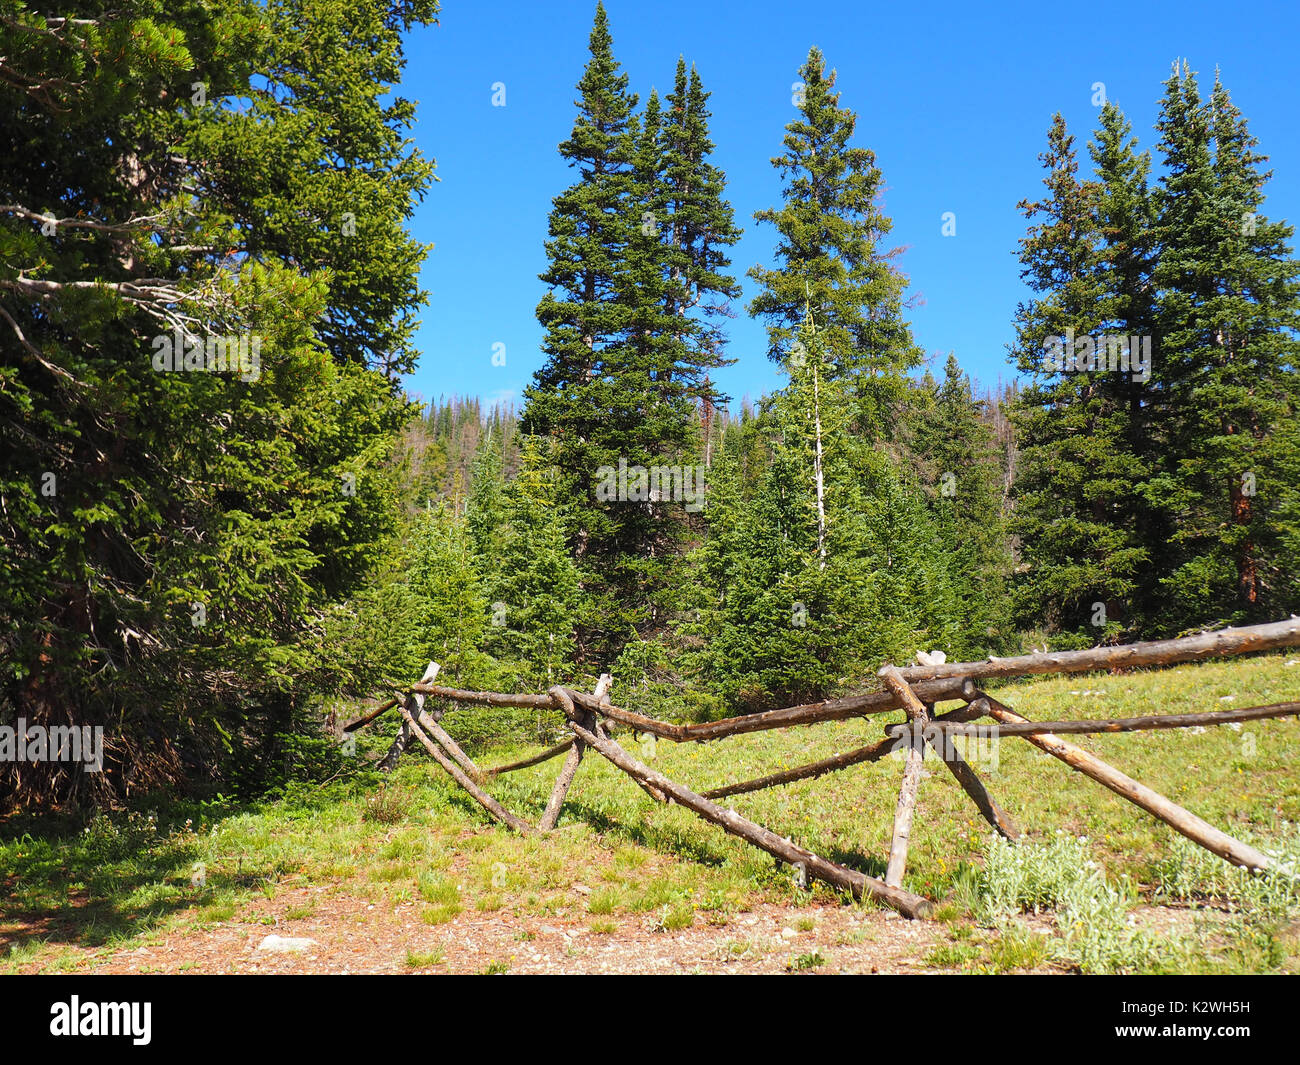 a simple tree fence nestled among evergreen trees in rocky mountain